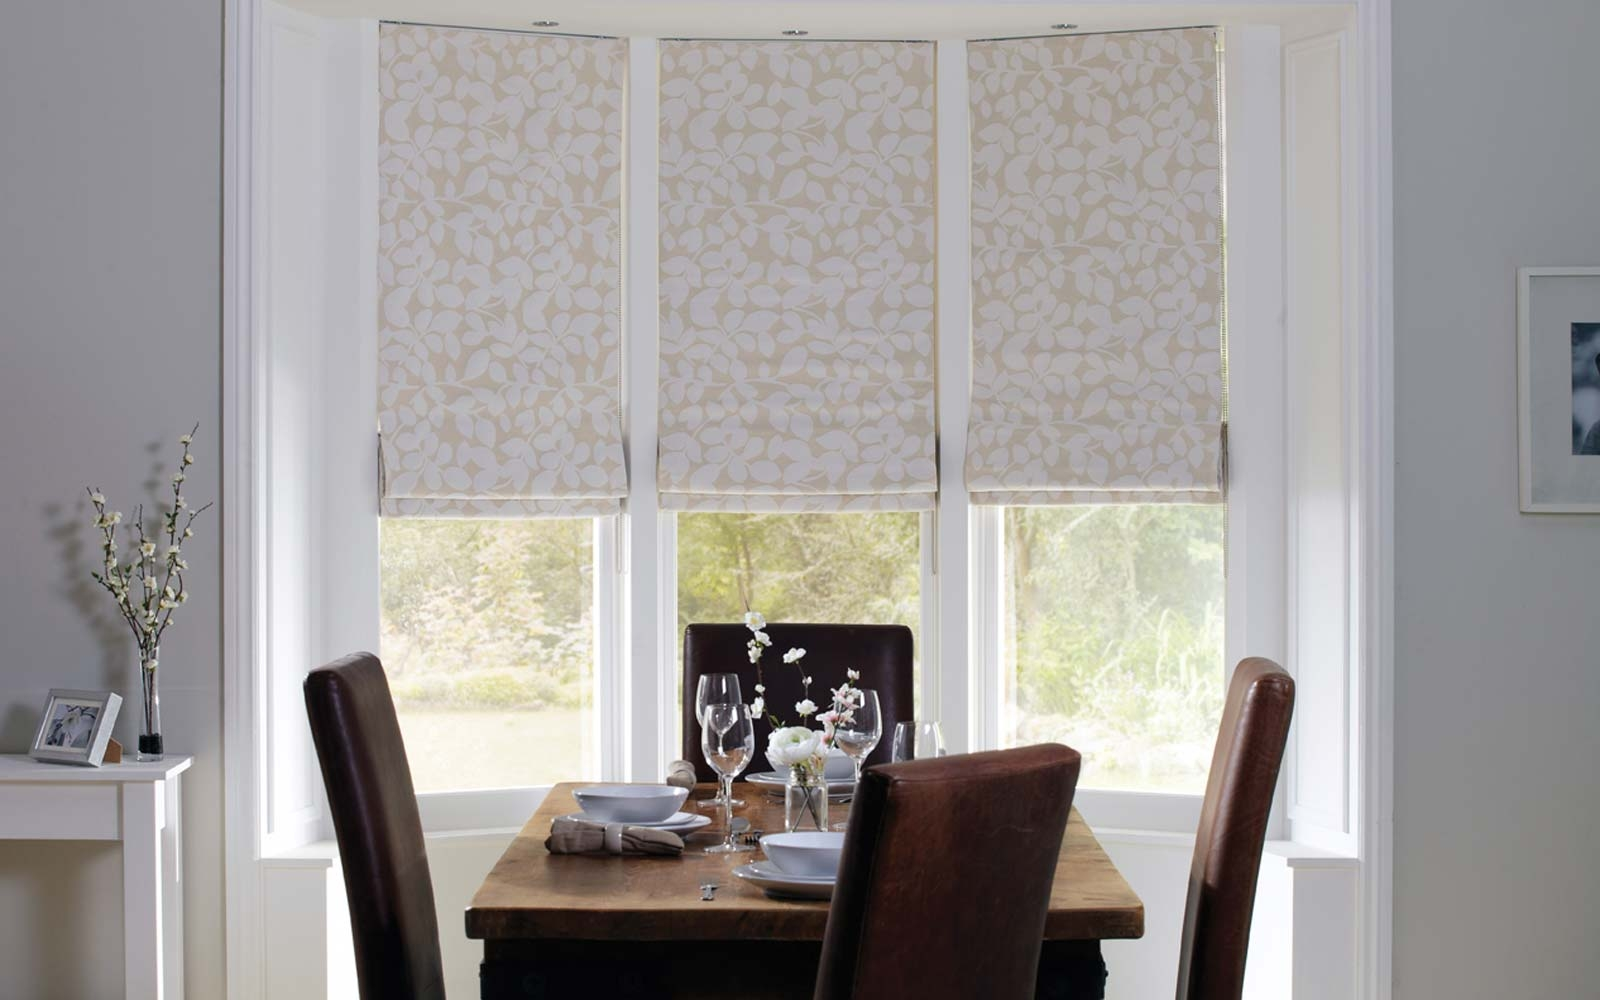 Roman Blinds Surrey Blinds Shutters With Regard To Bay Window Roller Blinds (View 12 of 15)